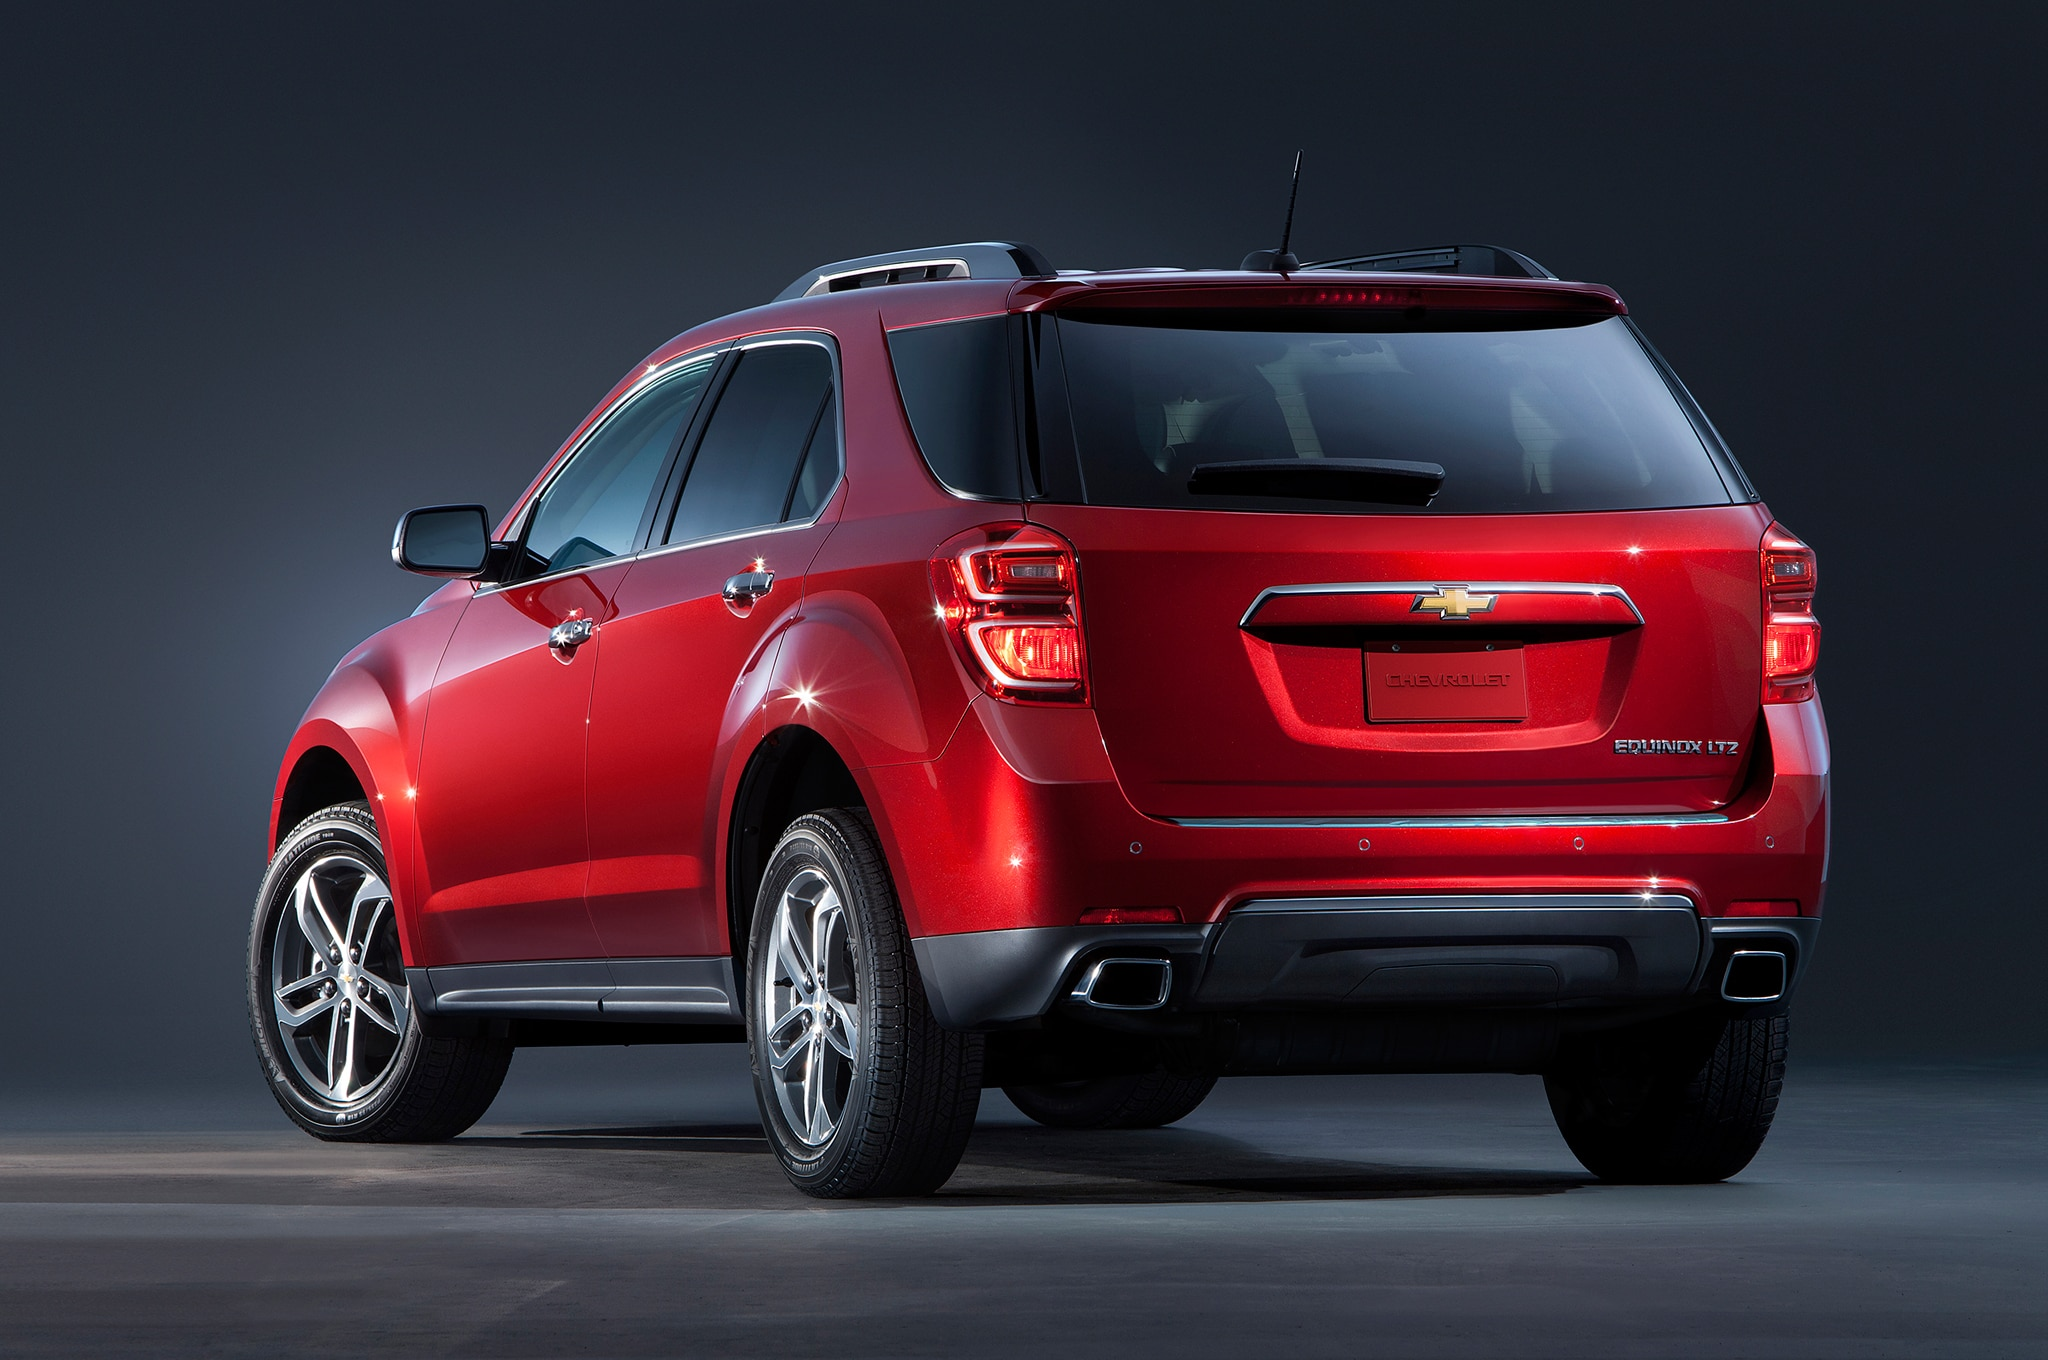 make nowadays is wagon review chevrolet traverse a chevy cousins more but day new dad truck suv lineup its still no based lot looking like in mistake it all the modern